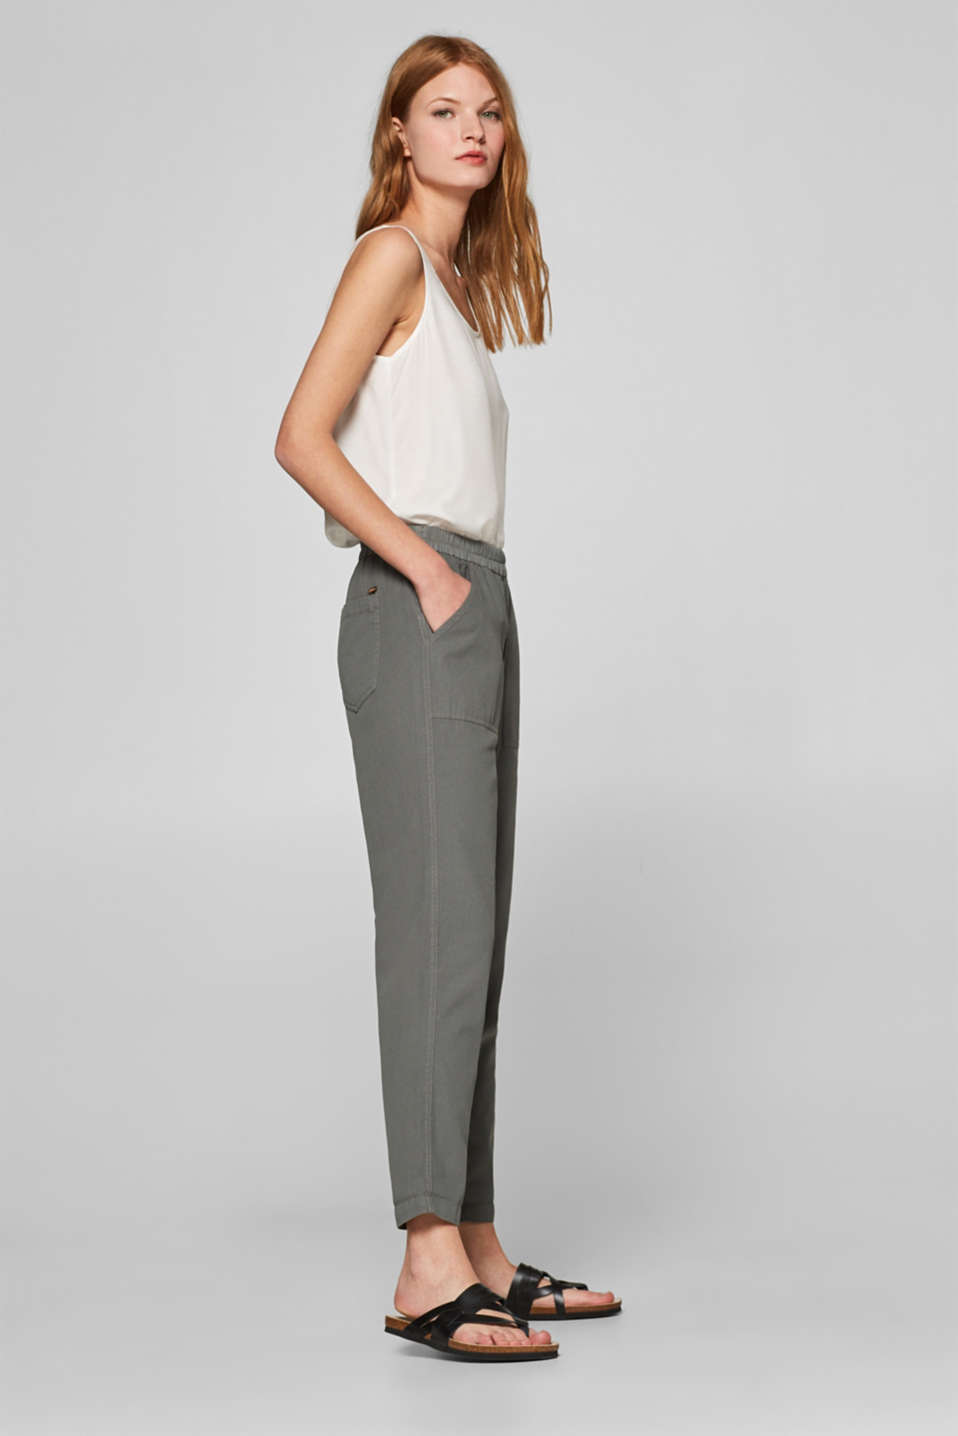 Esprit - Trousers with an elasticated waistband, 100% cotton